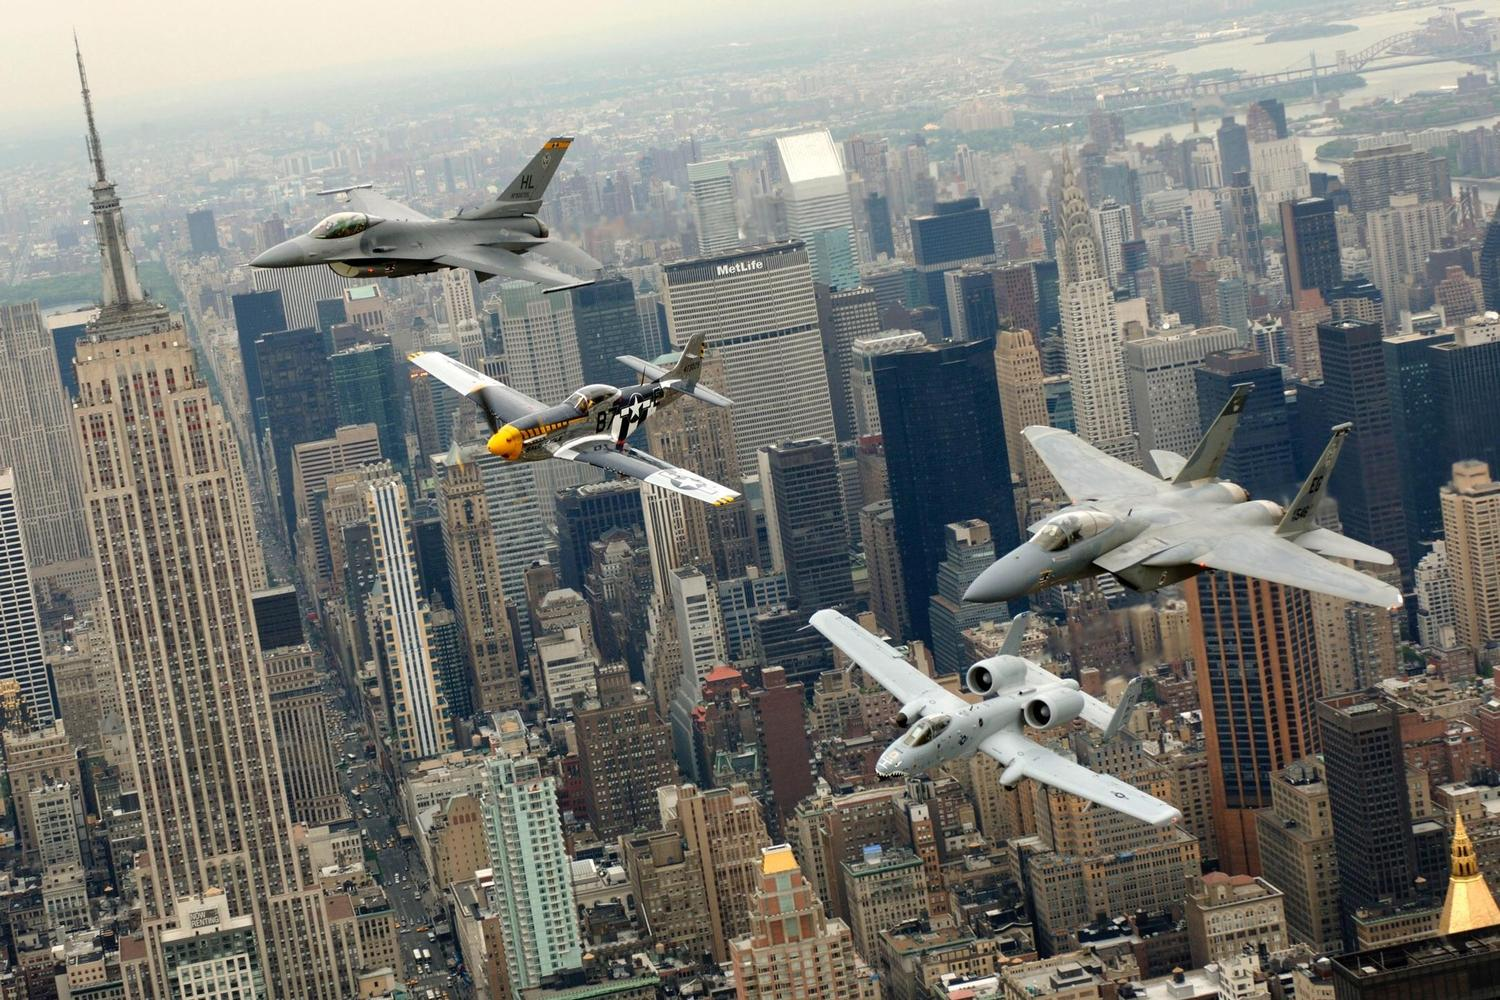 F-16, P-51, A-10 and an F-15 flying above New York City